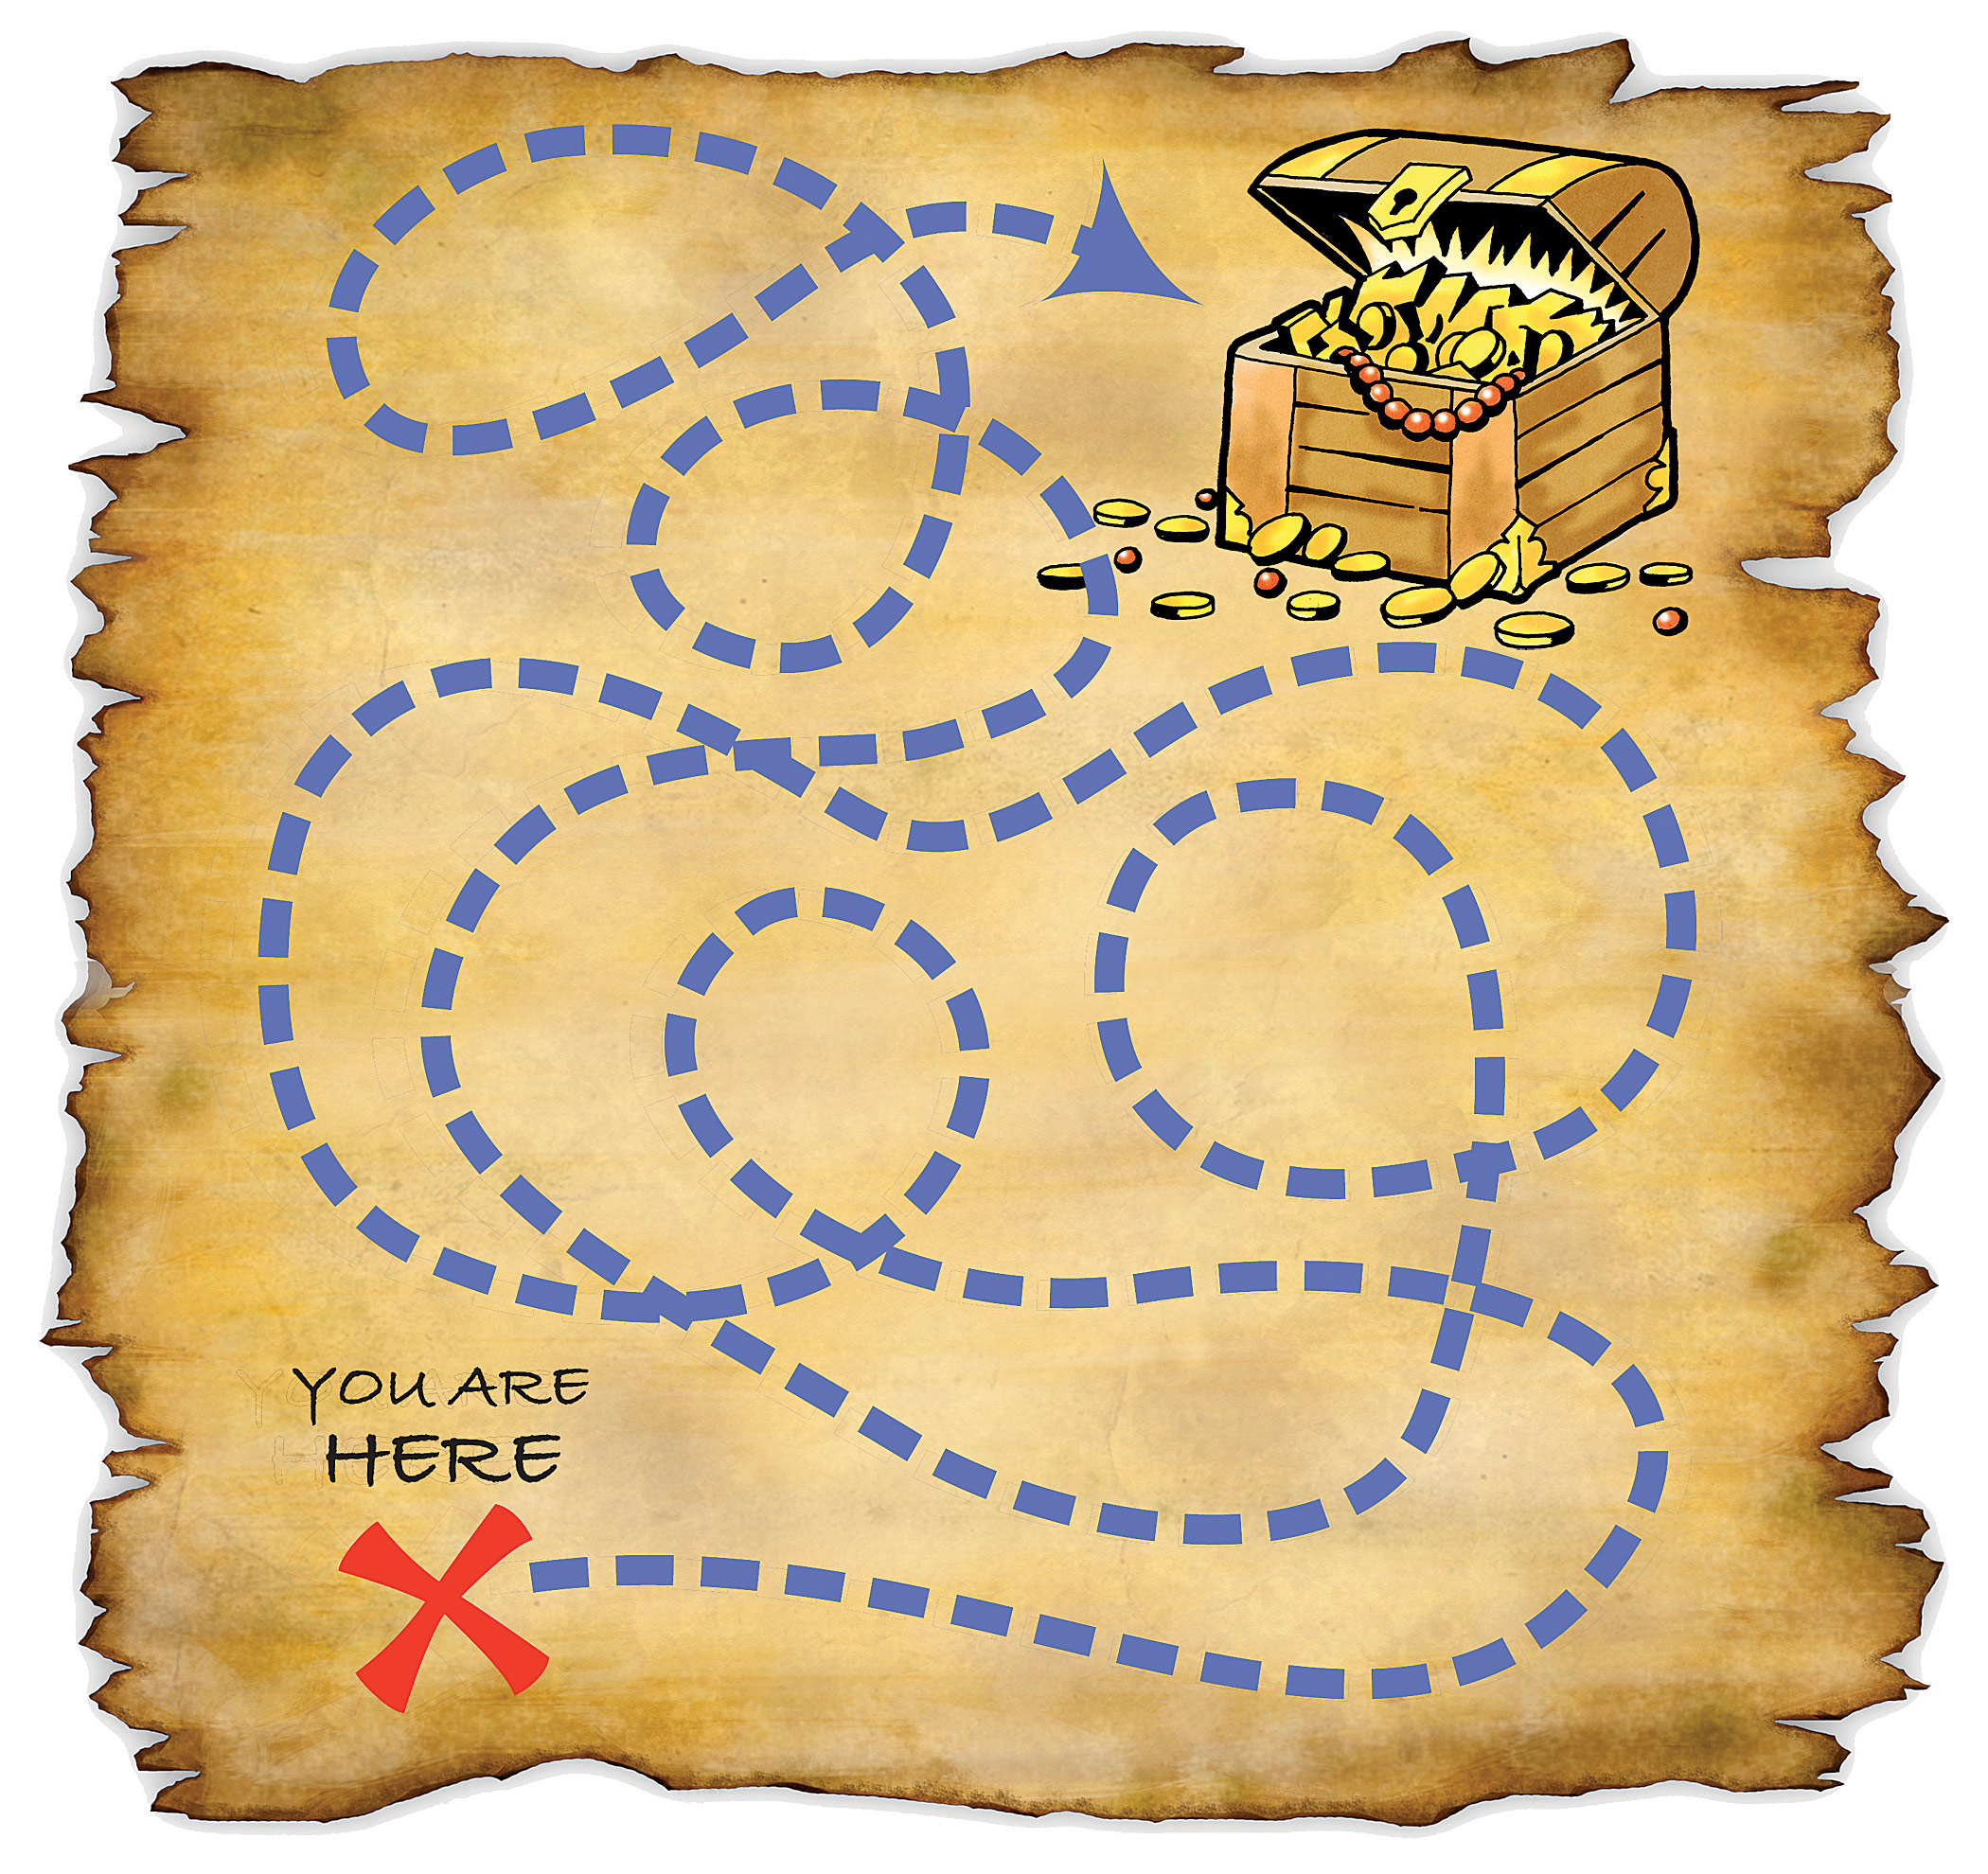 treasure-map.jpg